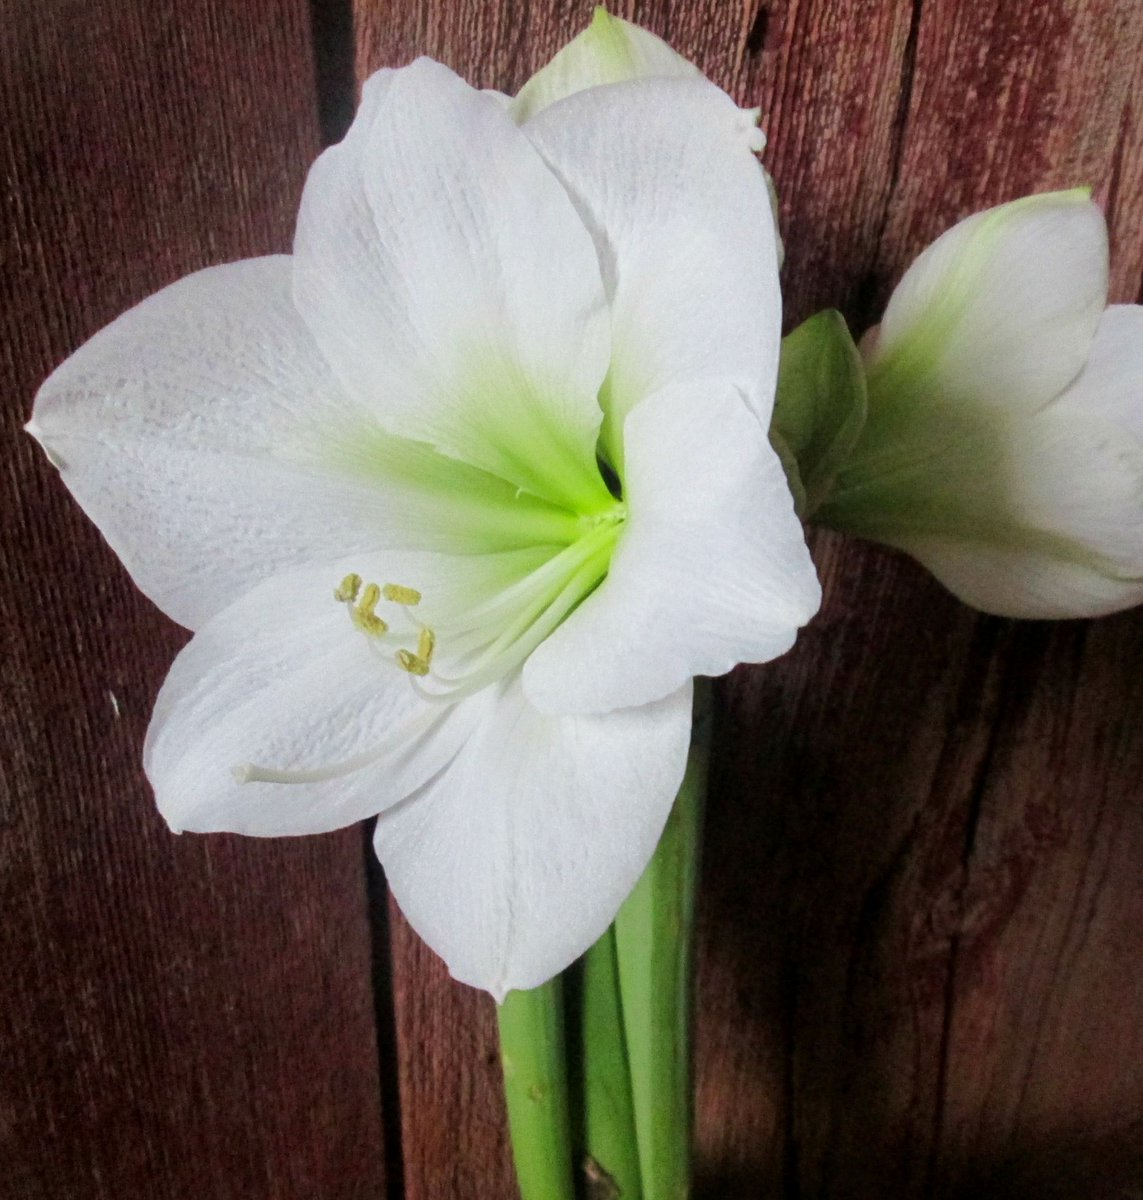 Royal Colors On Twitter Amaryllis Flower Color Meanings White